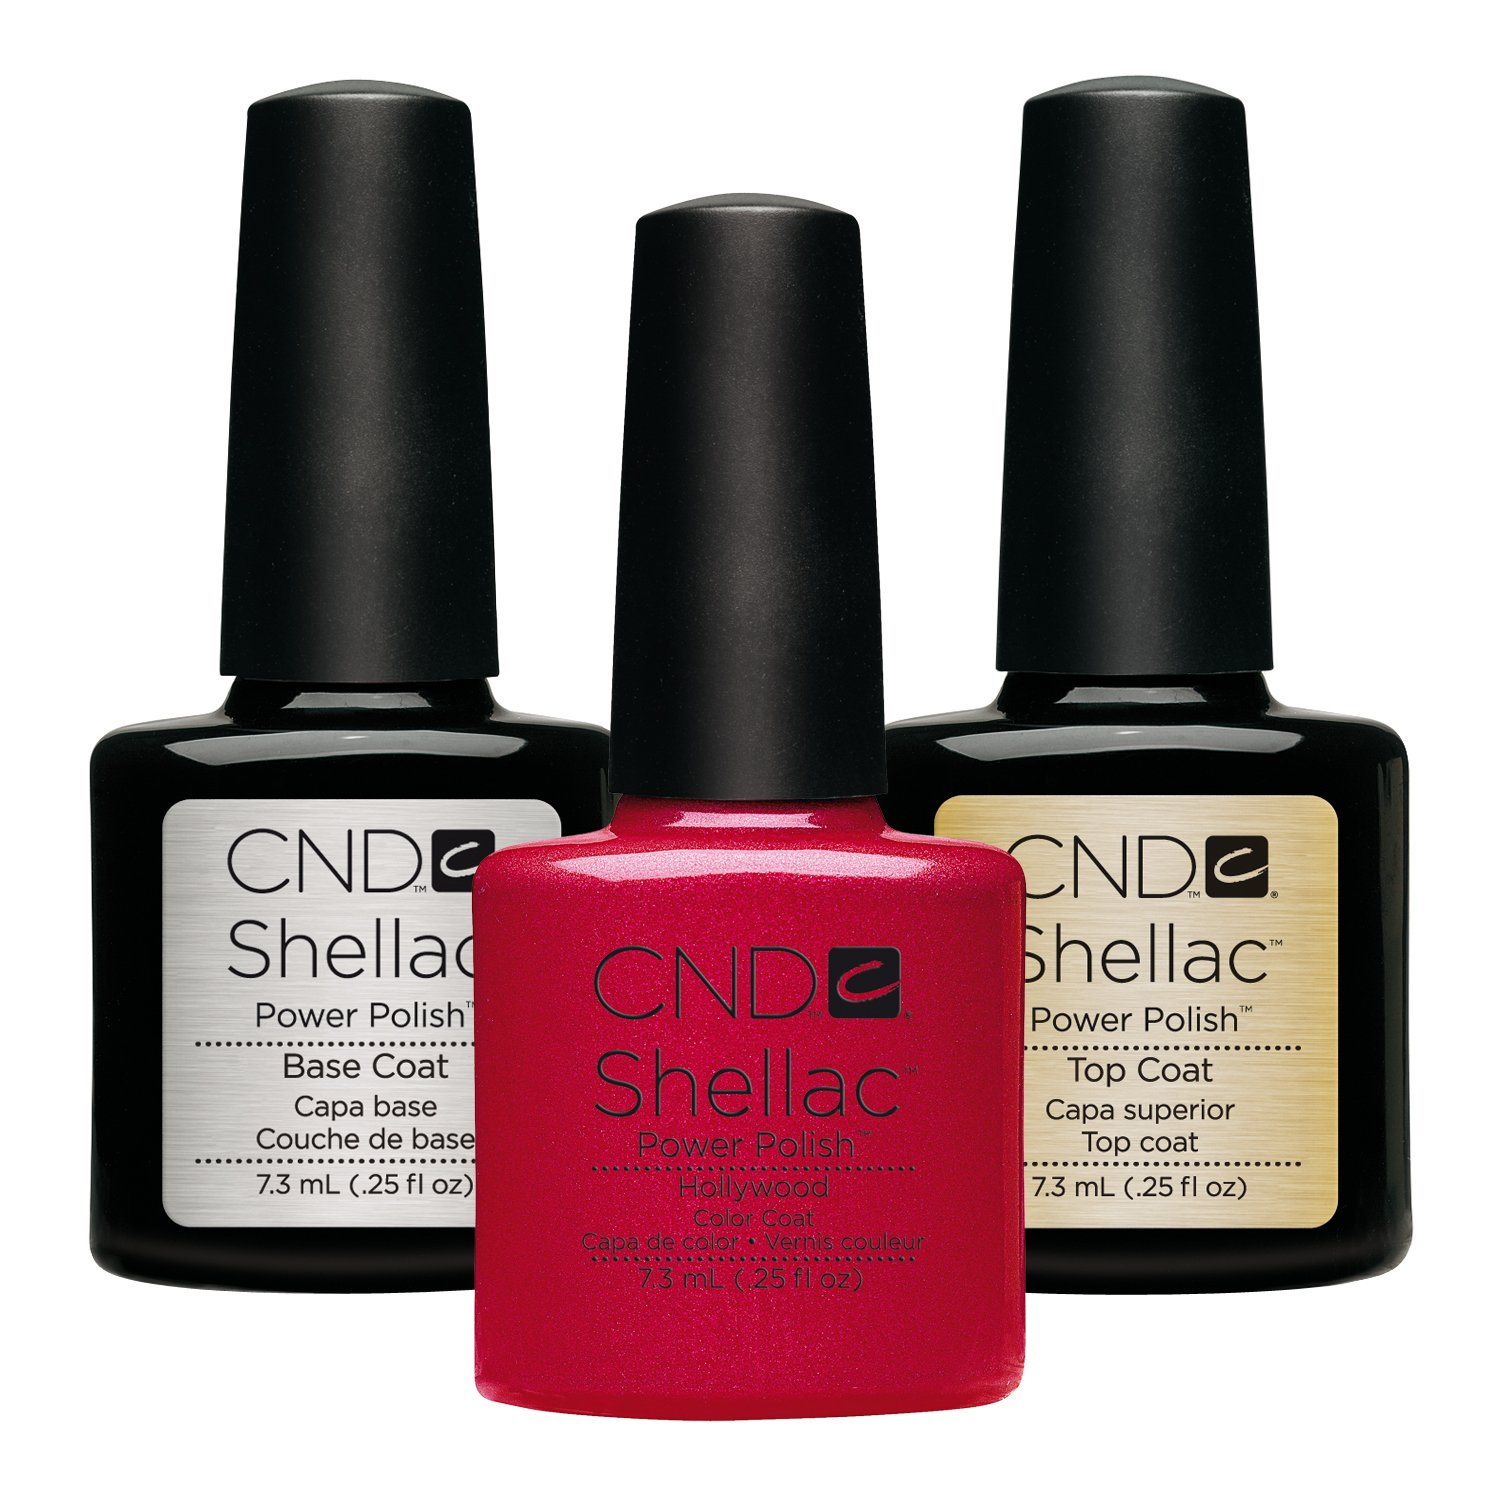 CND Original CND Shellac Hollywood plus Base Coat plus Top Coat 7.3 ml, 1er Pack (1 x 22 ml) AMPACK029